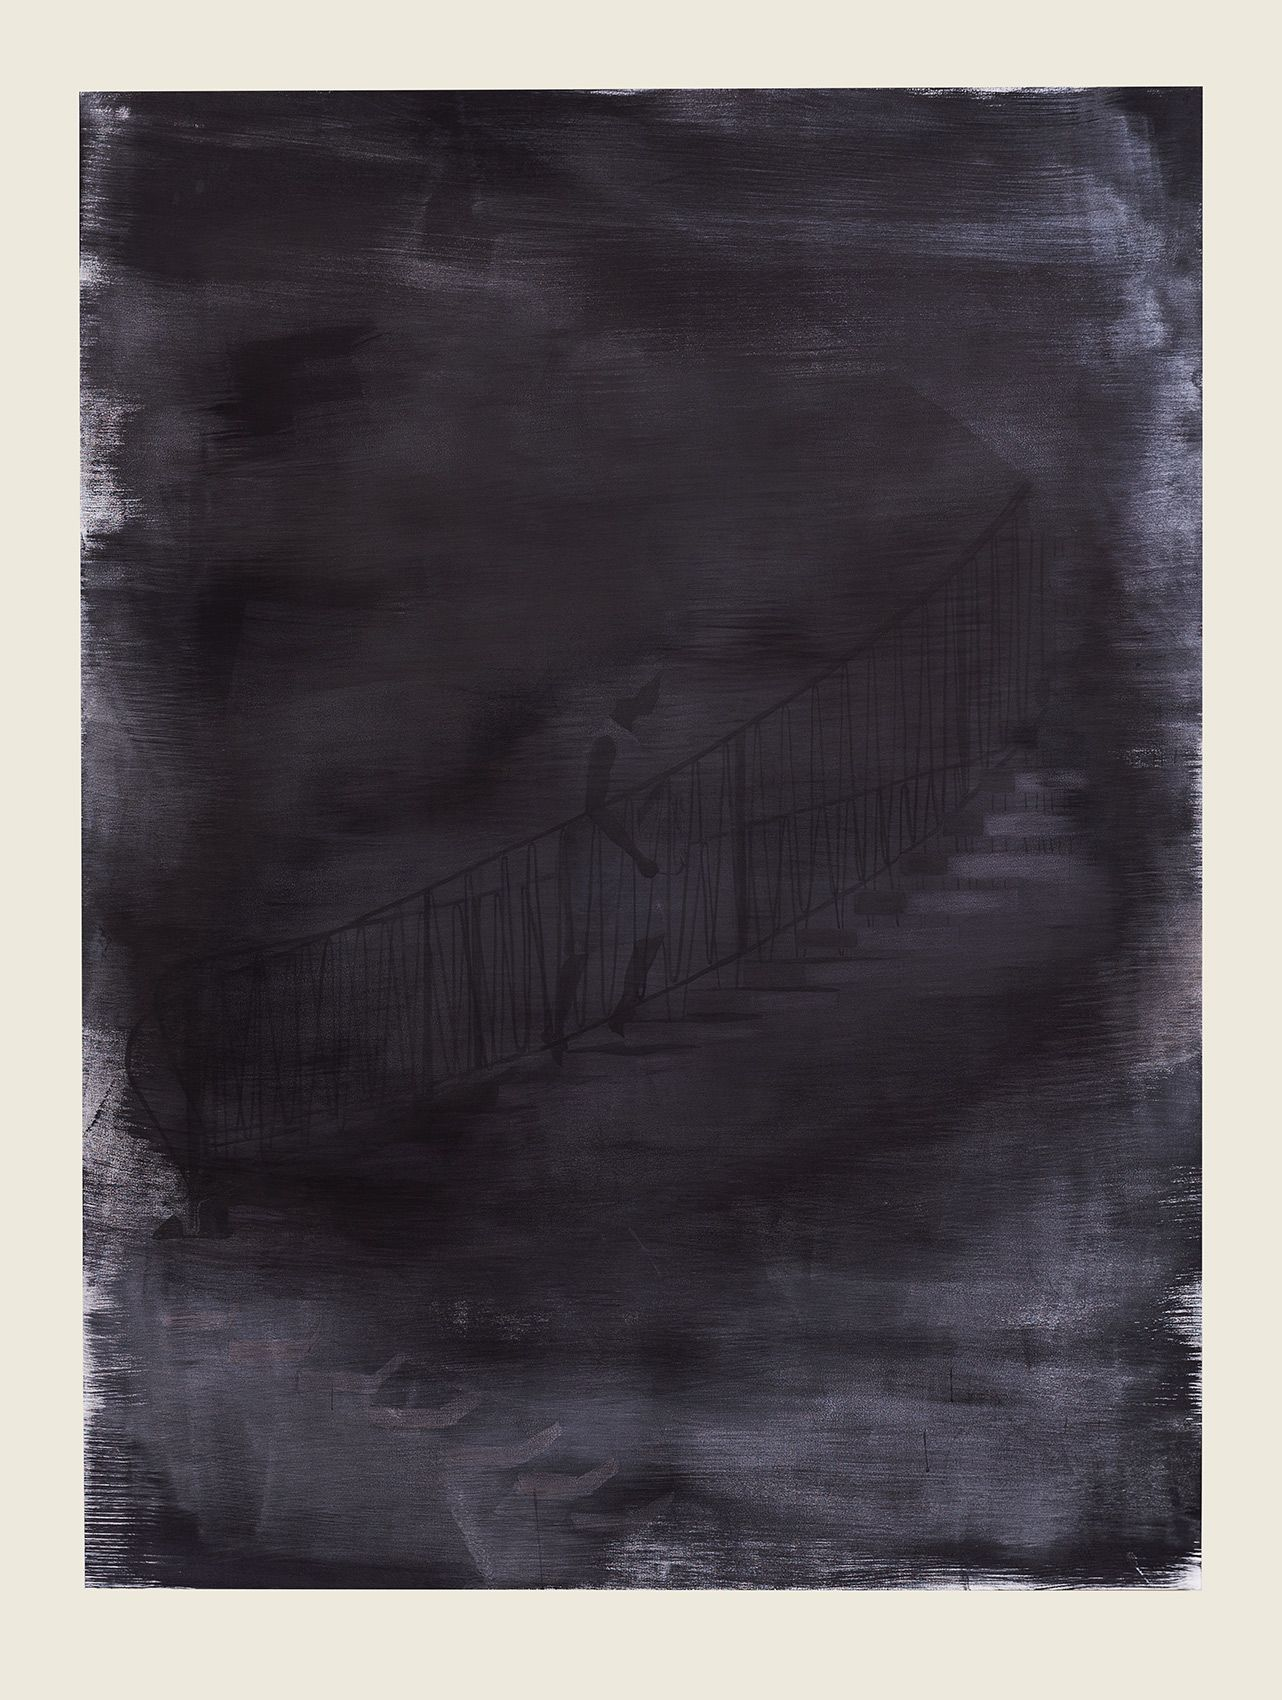 Darkened Staircase, 2015